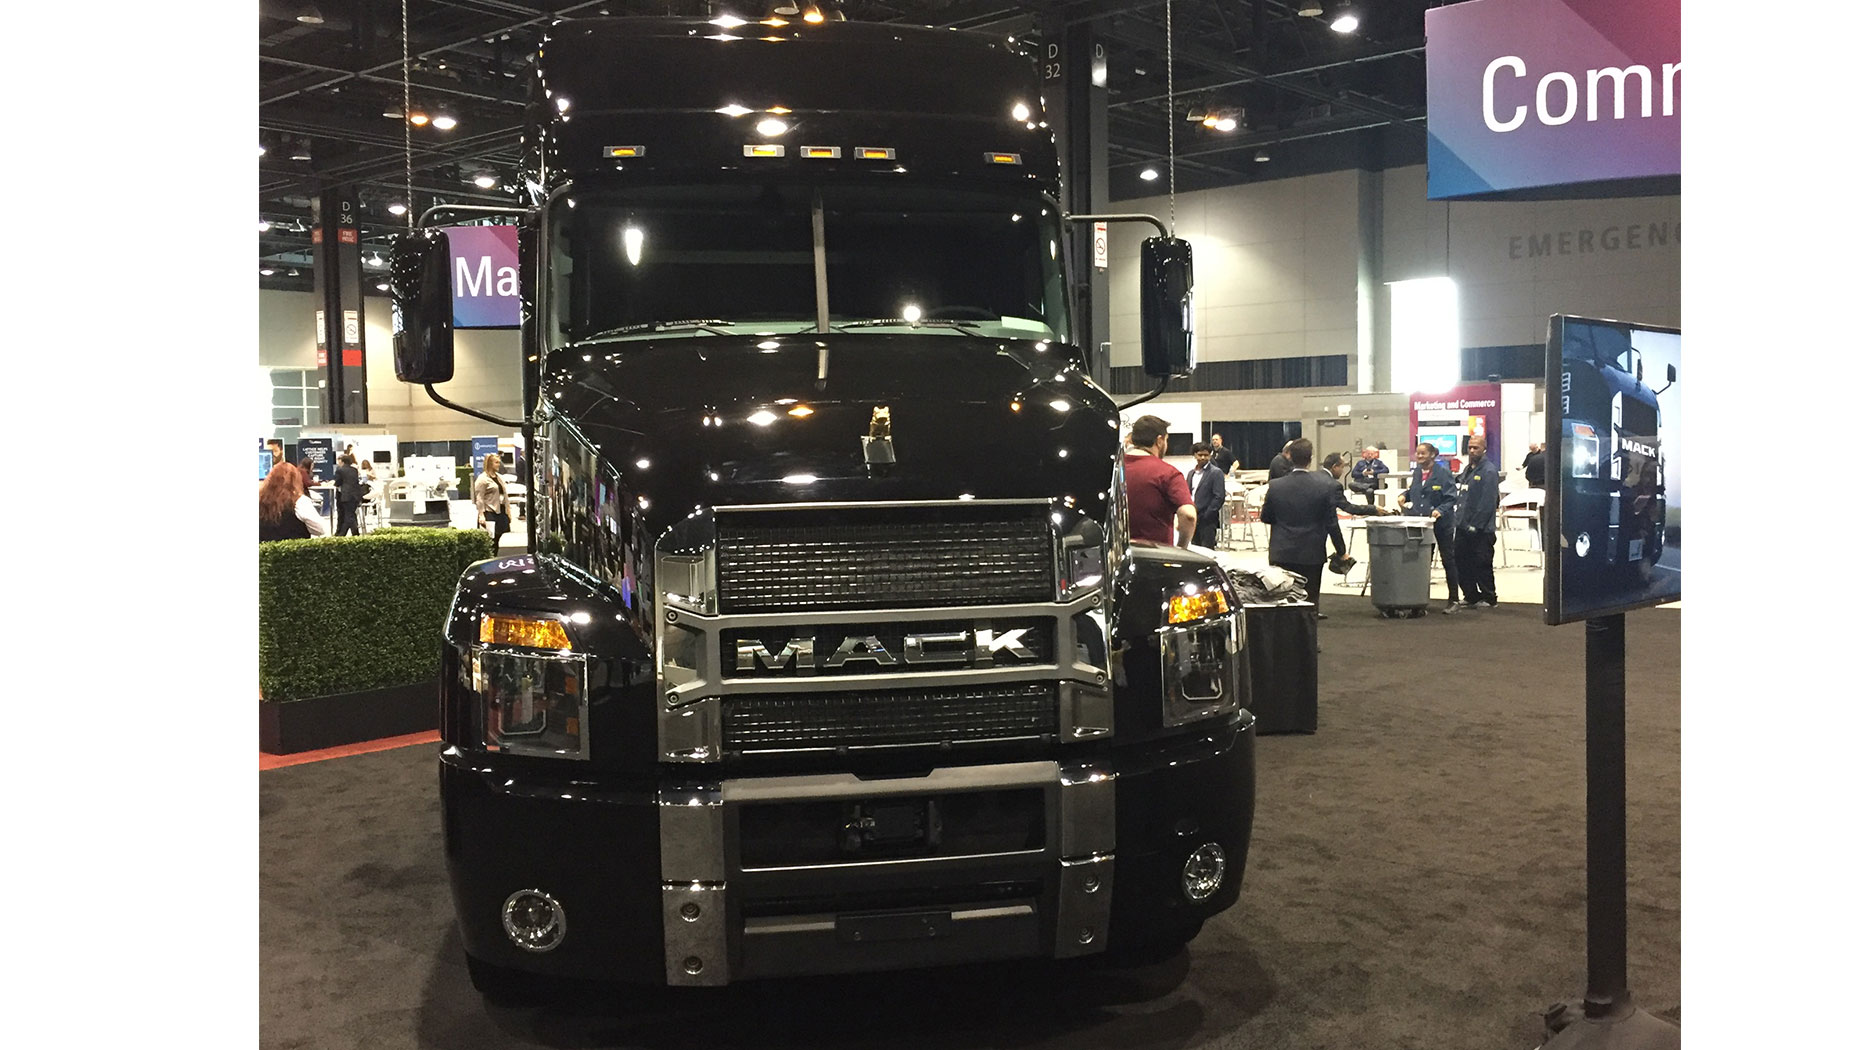 Mack Trucks' Modern Marketing Efforts  Featured at Oracle Event